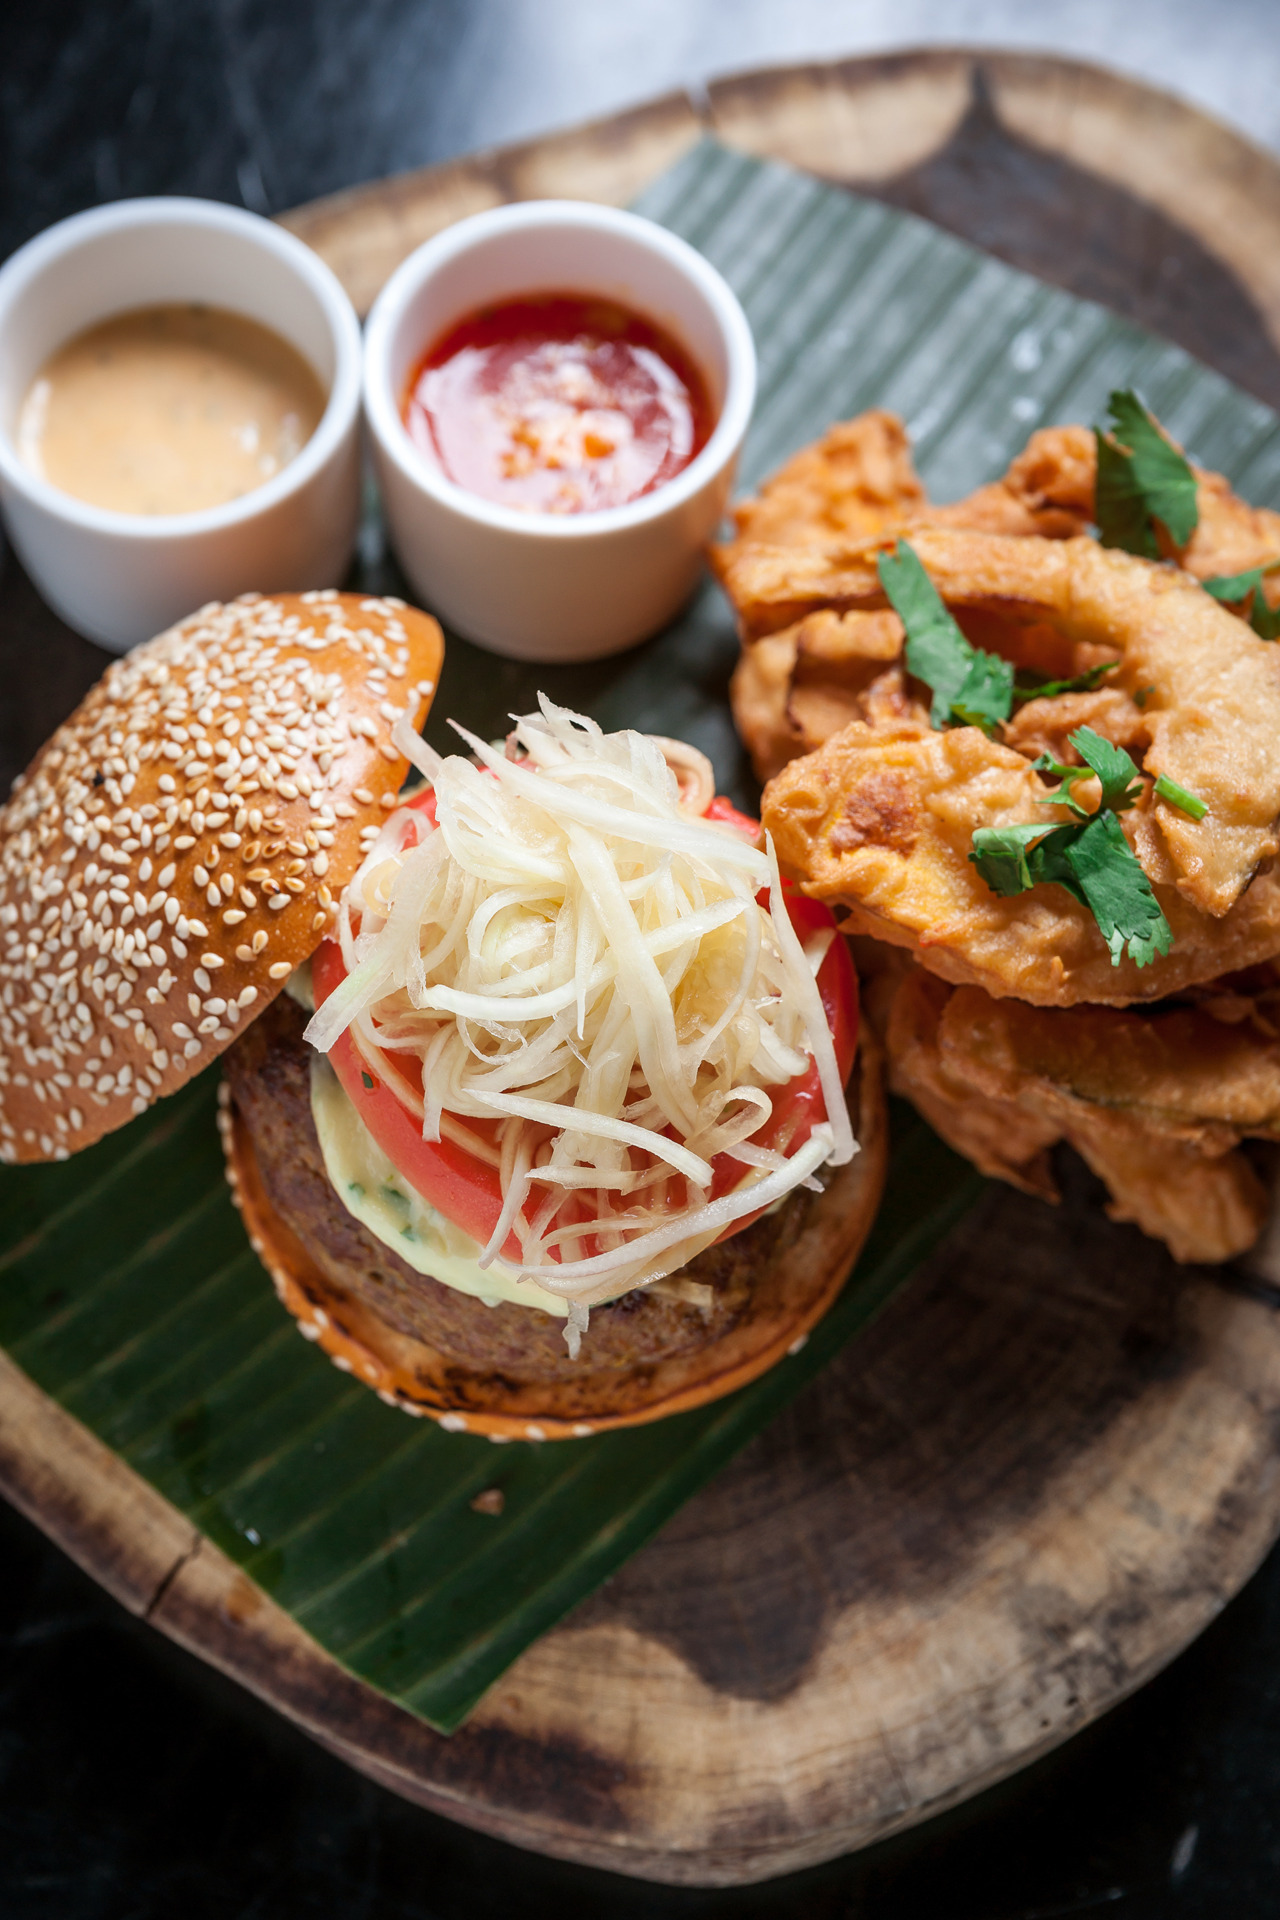 The Thai Burger at Hong Thaimee's NGAM is quite possibly one of the most interesting things i've ever had to eat in my whole little life… Therefore you have only two courses of action: 1) If you live in NYC - go there for dinner POST HASTE!  2) if you live elsewhere - the link above has the WHOLE RECIPE! Special Thanks: Hong Thaimee, Linnea Covington & Rachel Walensky